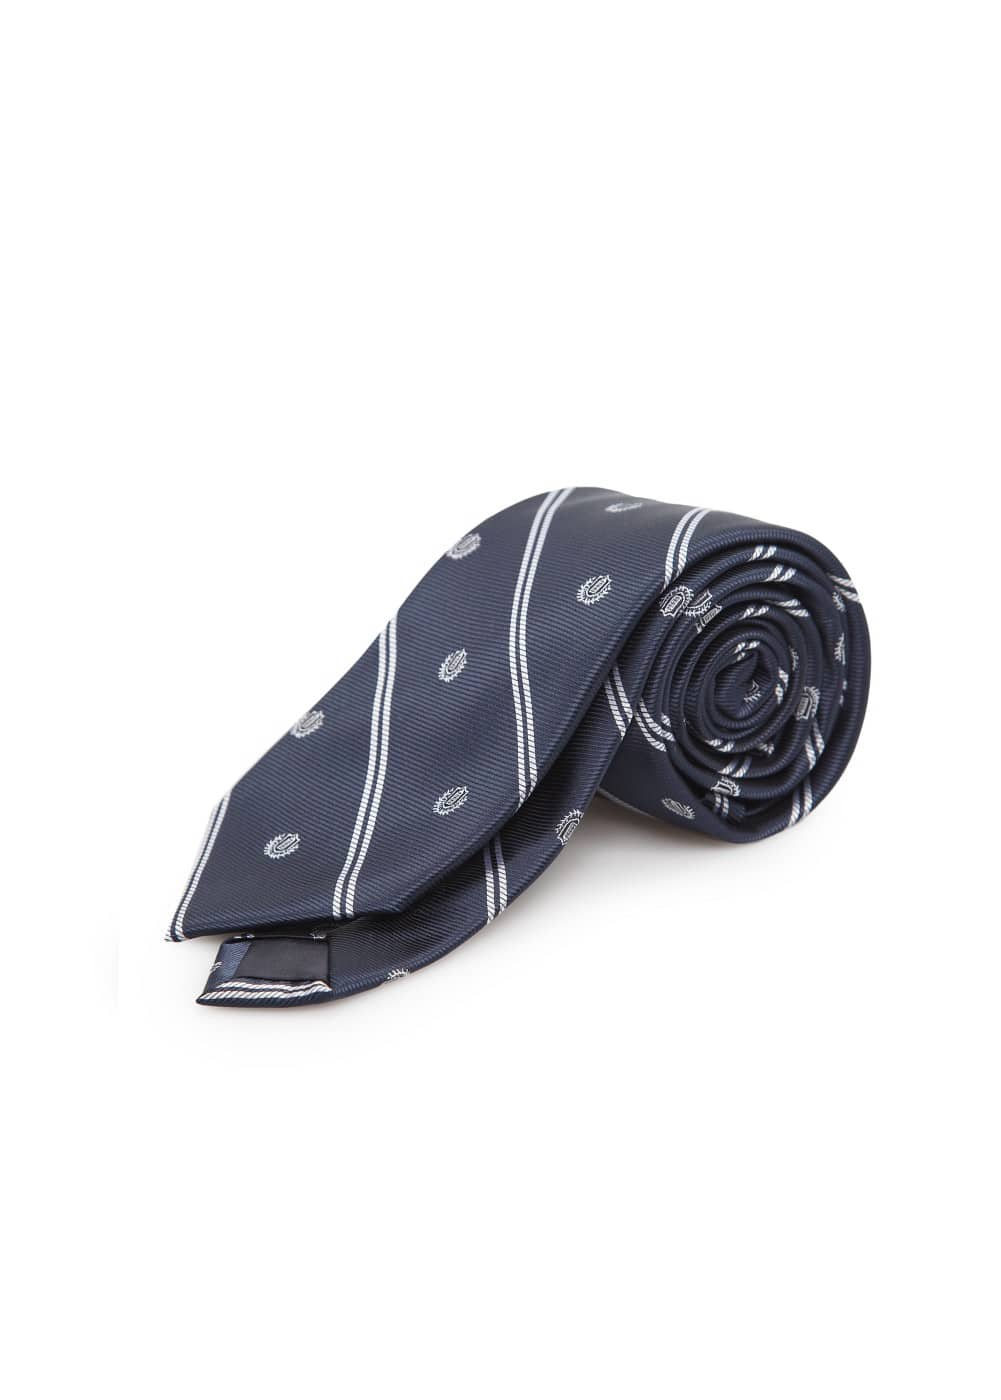 Emblem-patterned striped tie | MANGO